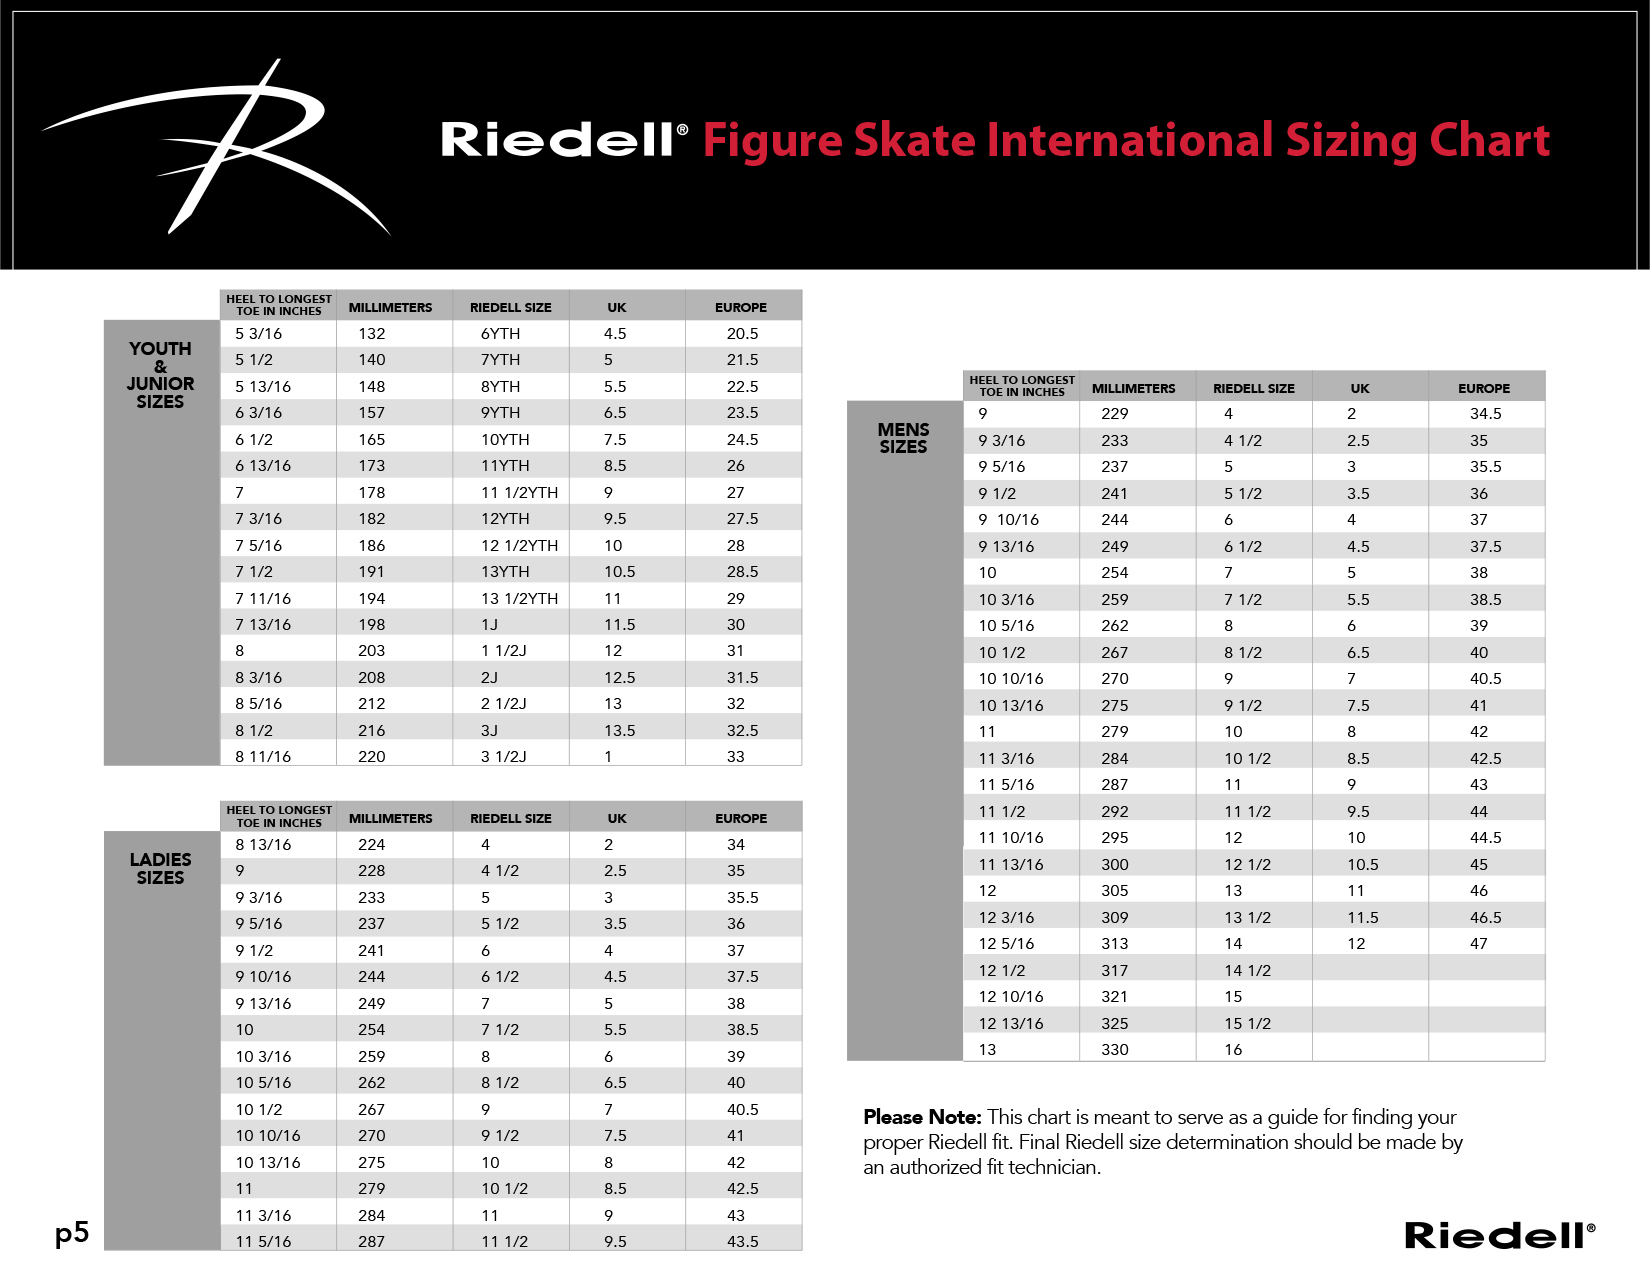 riedell-roller-sizing-guide-high-top-boots-page-5.jpg